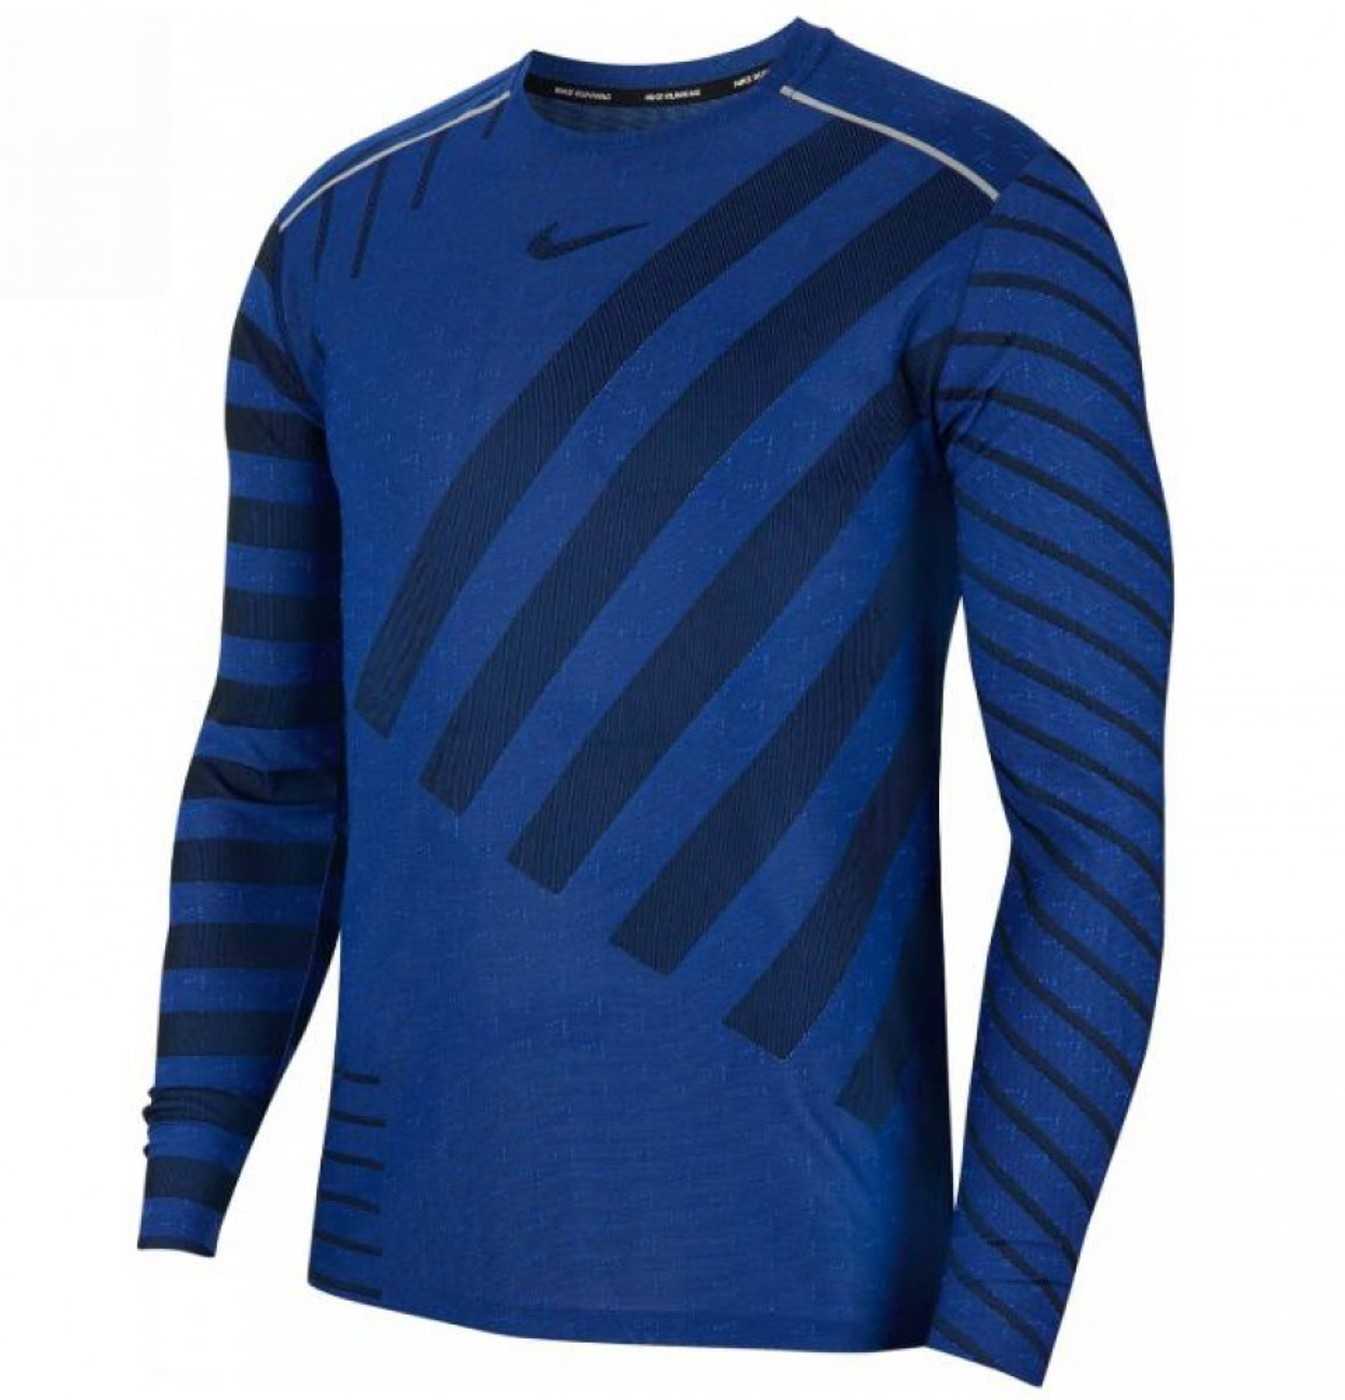 NIKE M NK TECH KNIT COOL LS NV - Herren